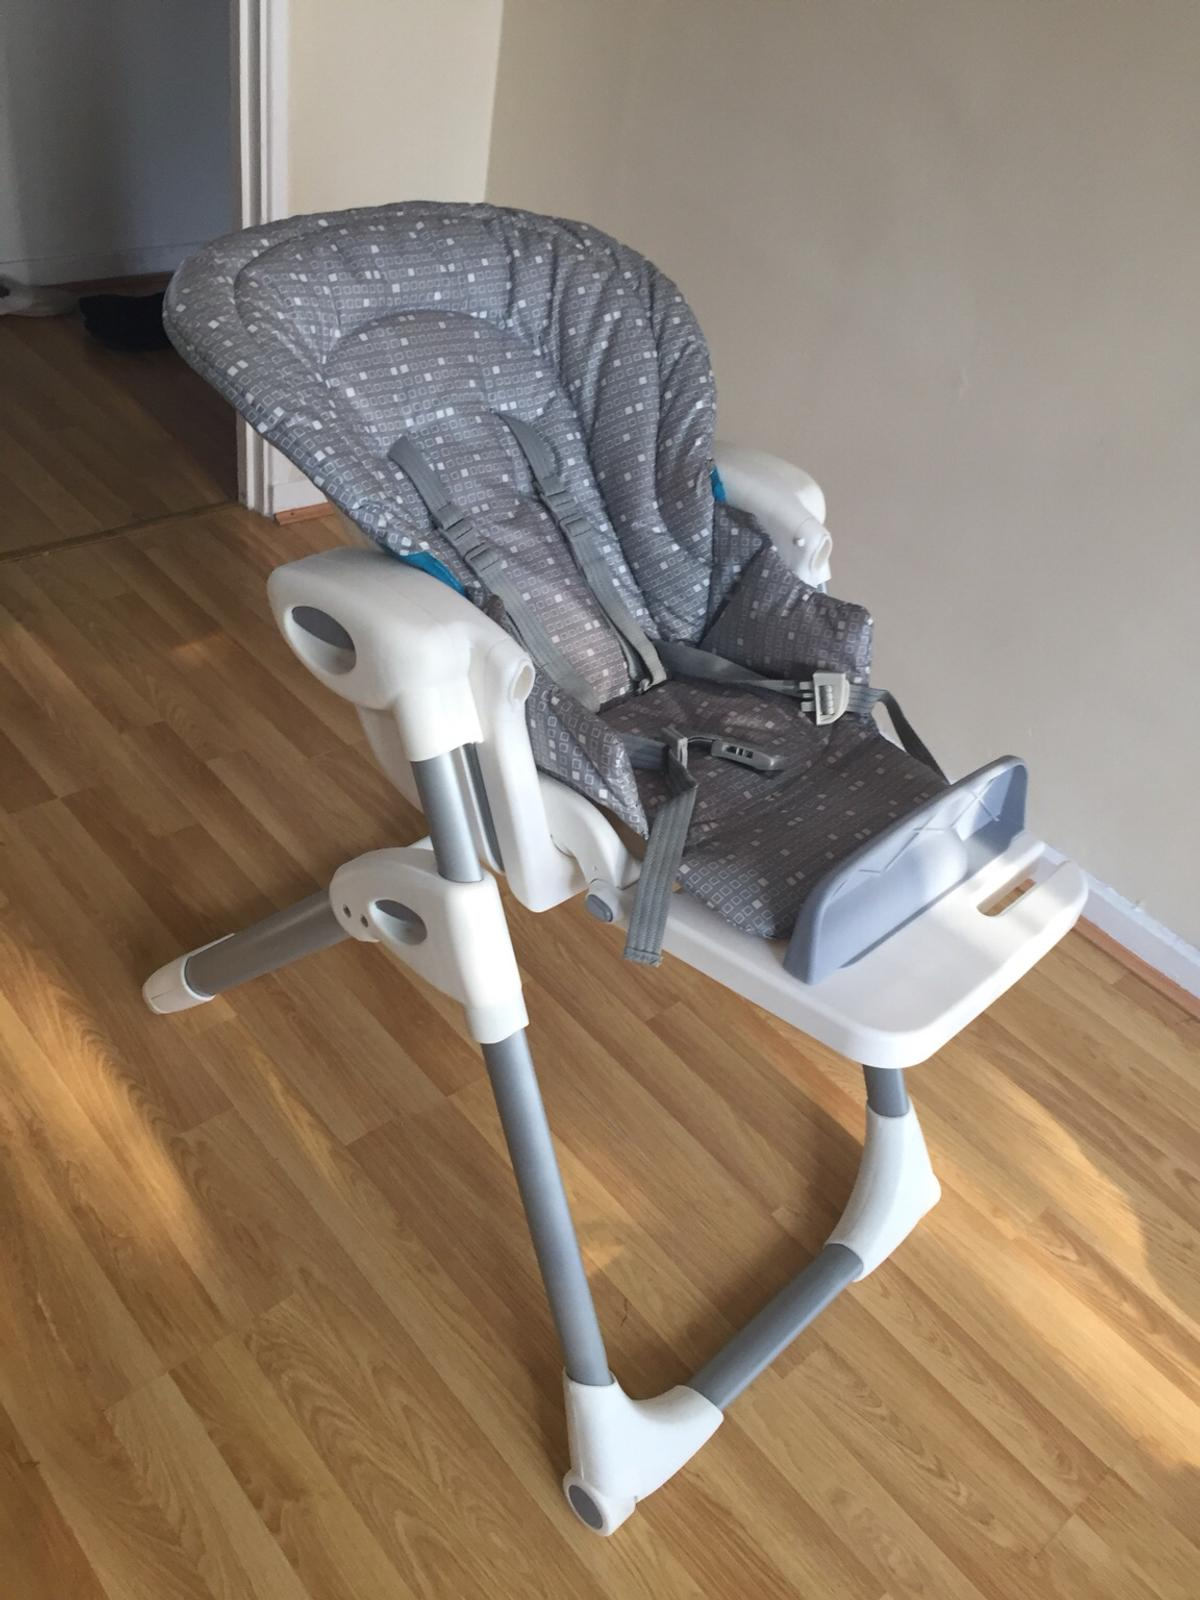 Joie Baby Mimzy Lx Highchair In E1 Hamlets For 40 00 For Sale